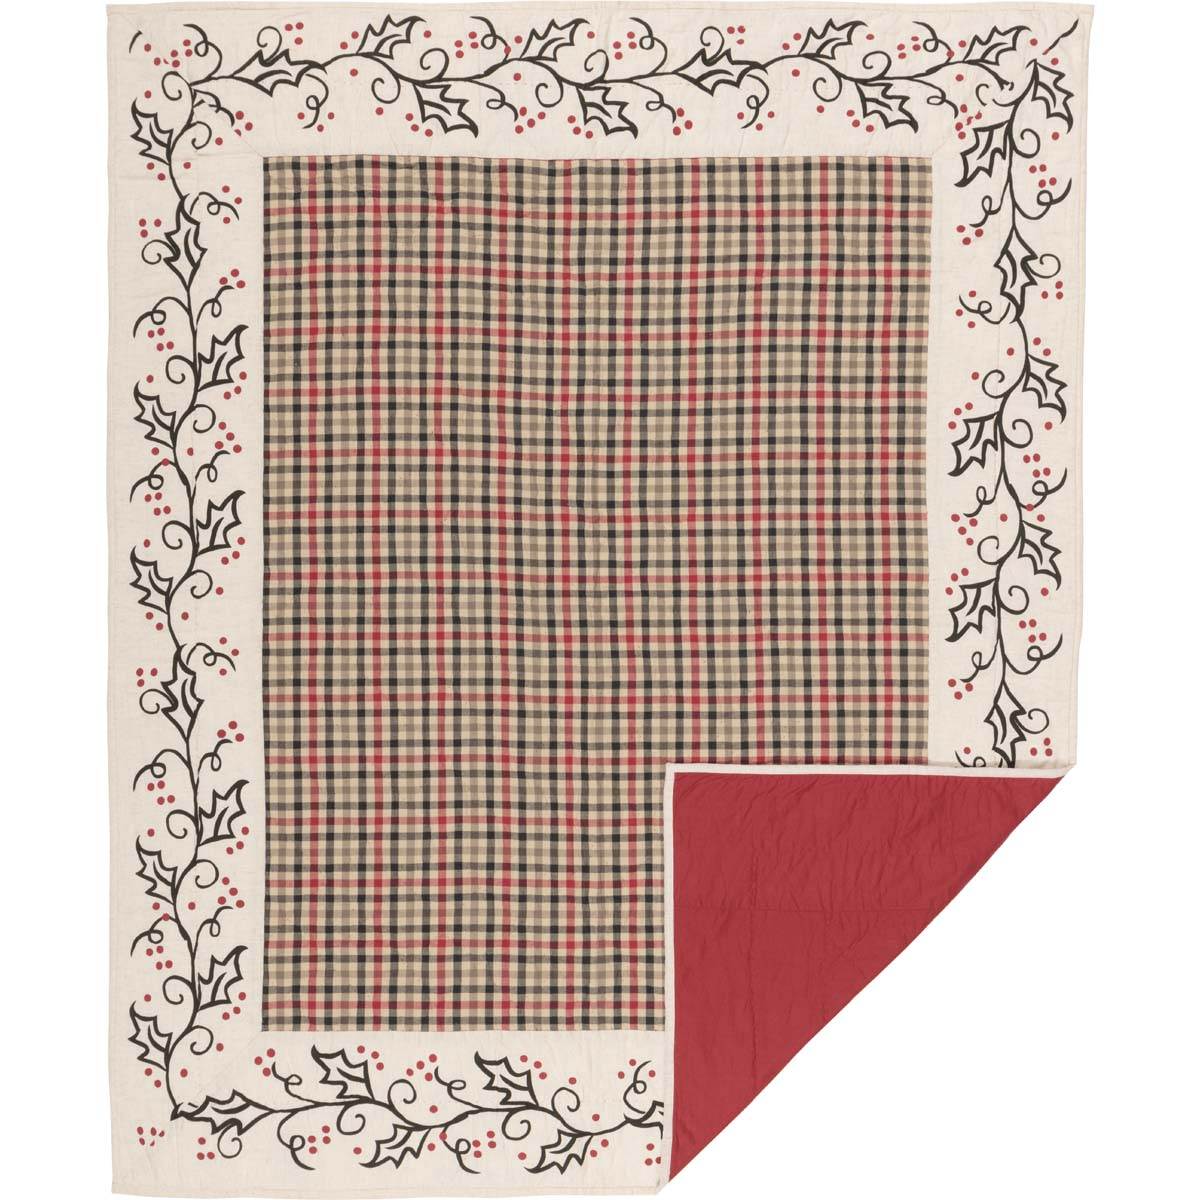 Hollis Quilted Throw 60x50